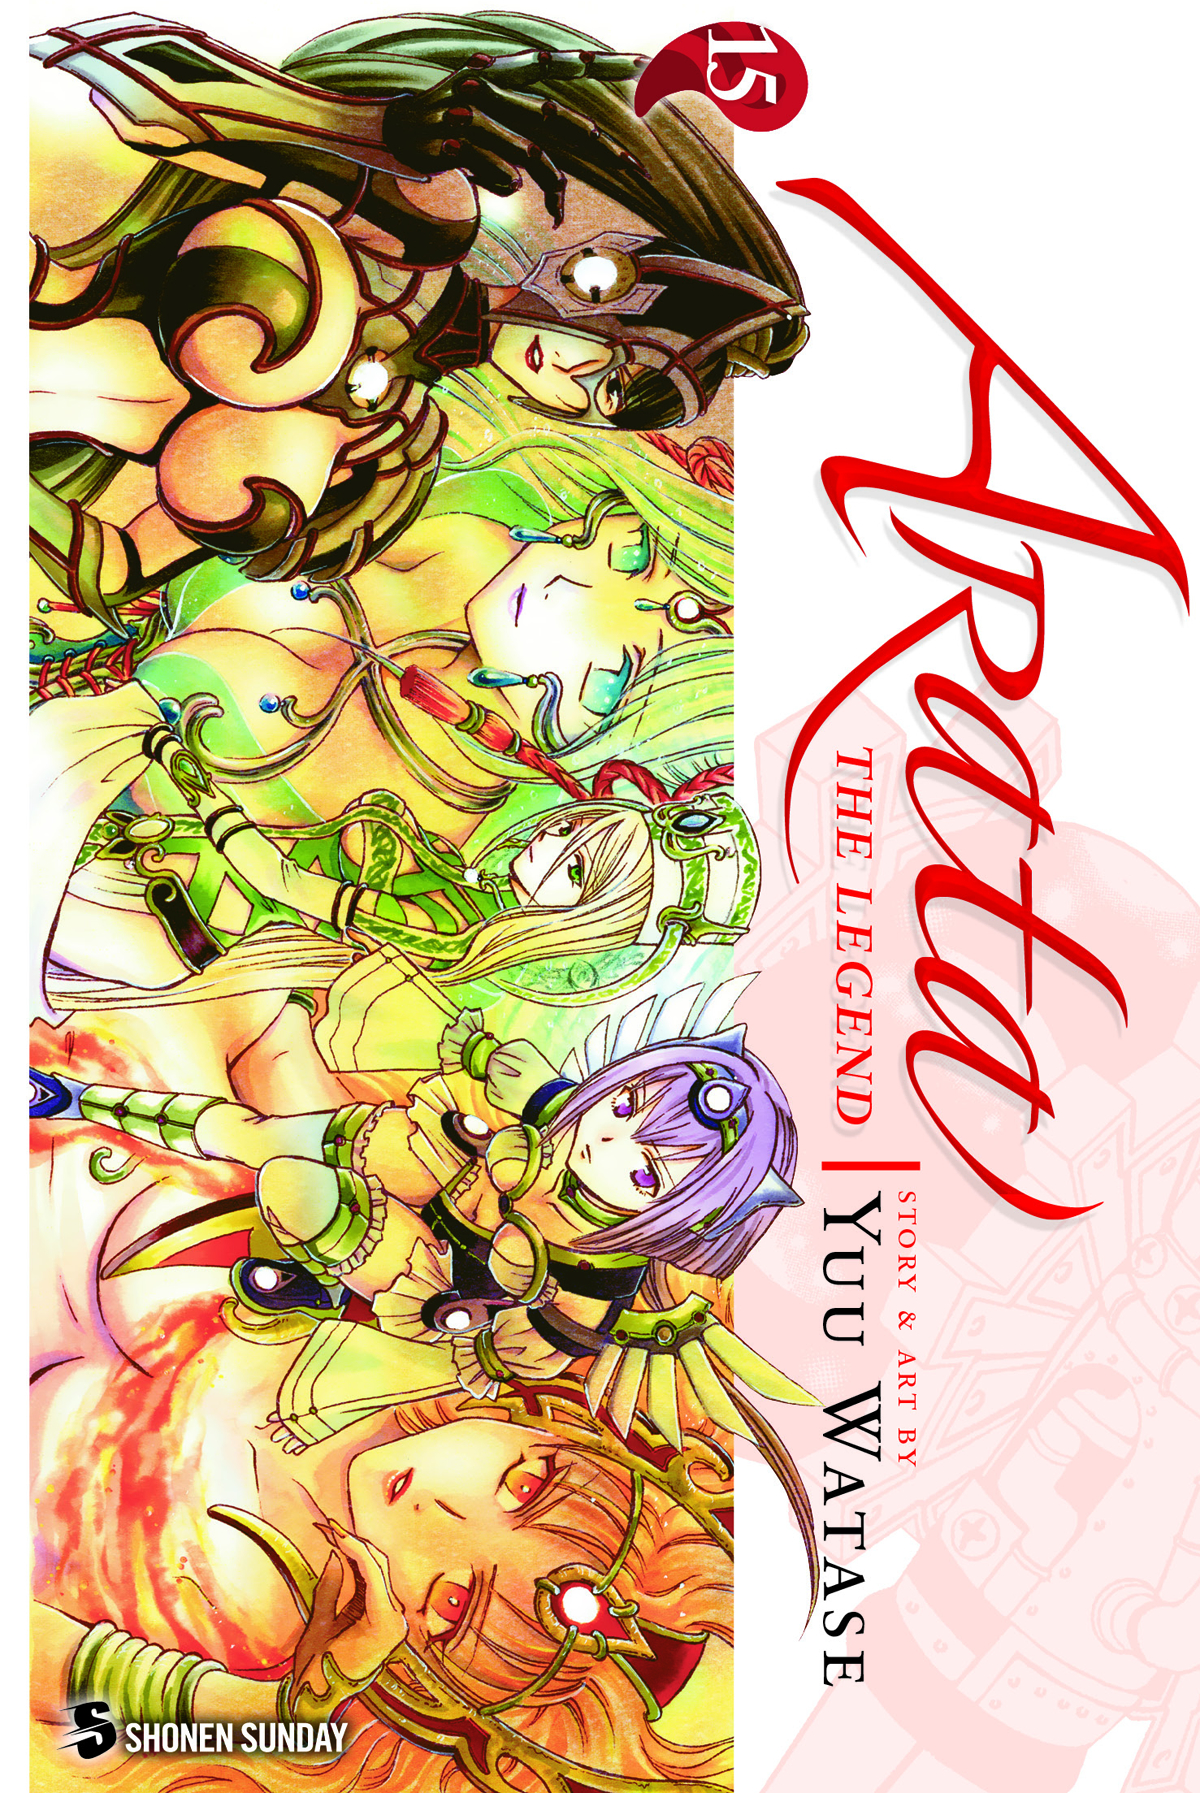 ARATA THE LEGEND GN VOL 15